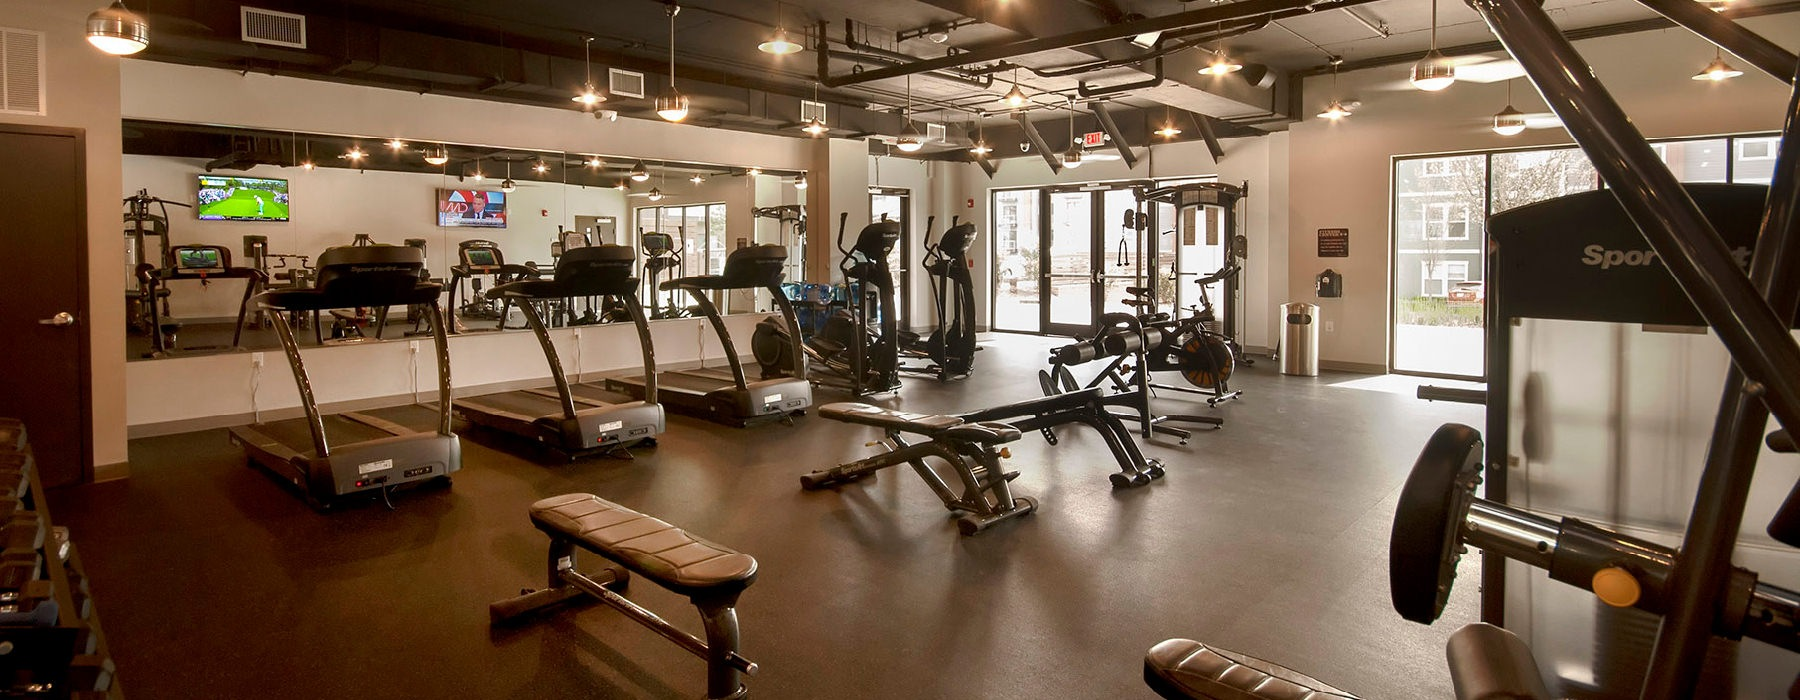 bright and spacious fitness center